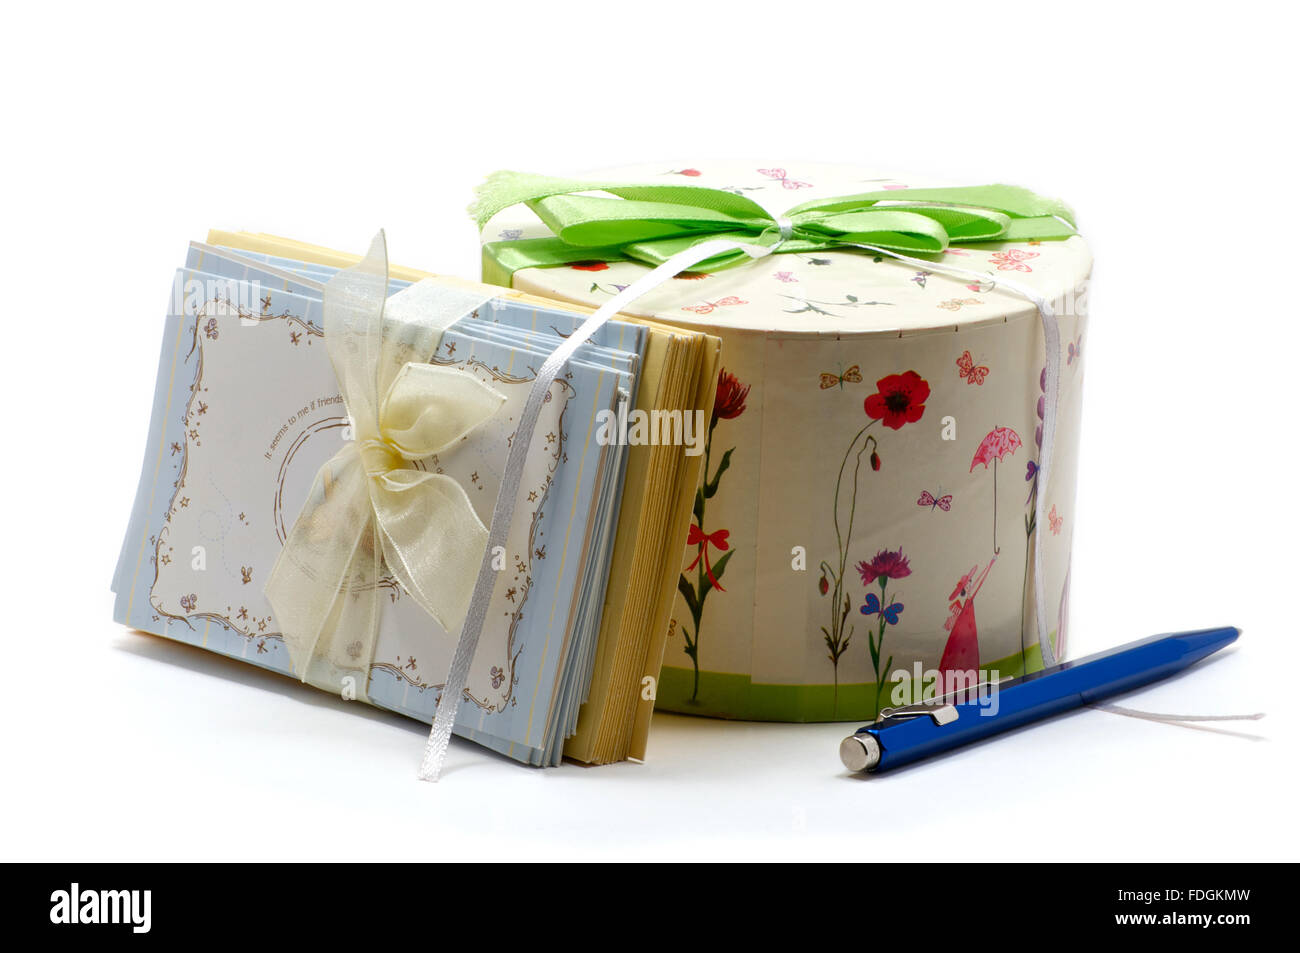 Gift box with greeting cards and navy blue pen - Stock Image